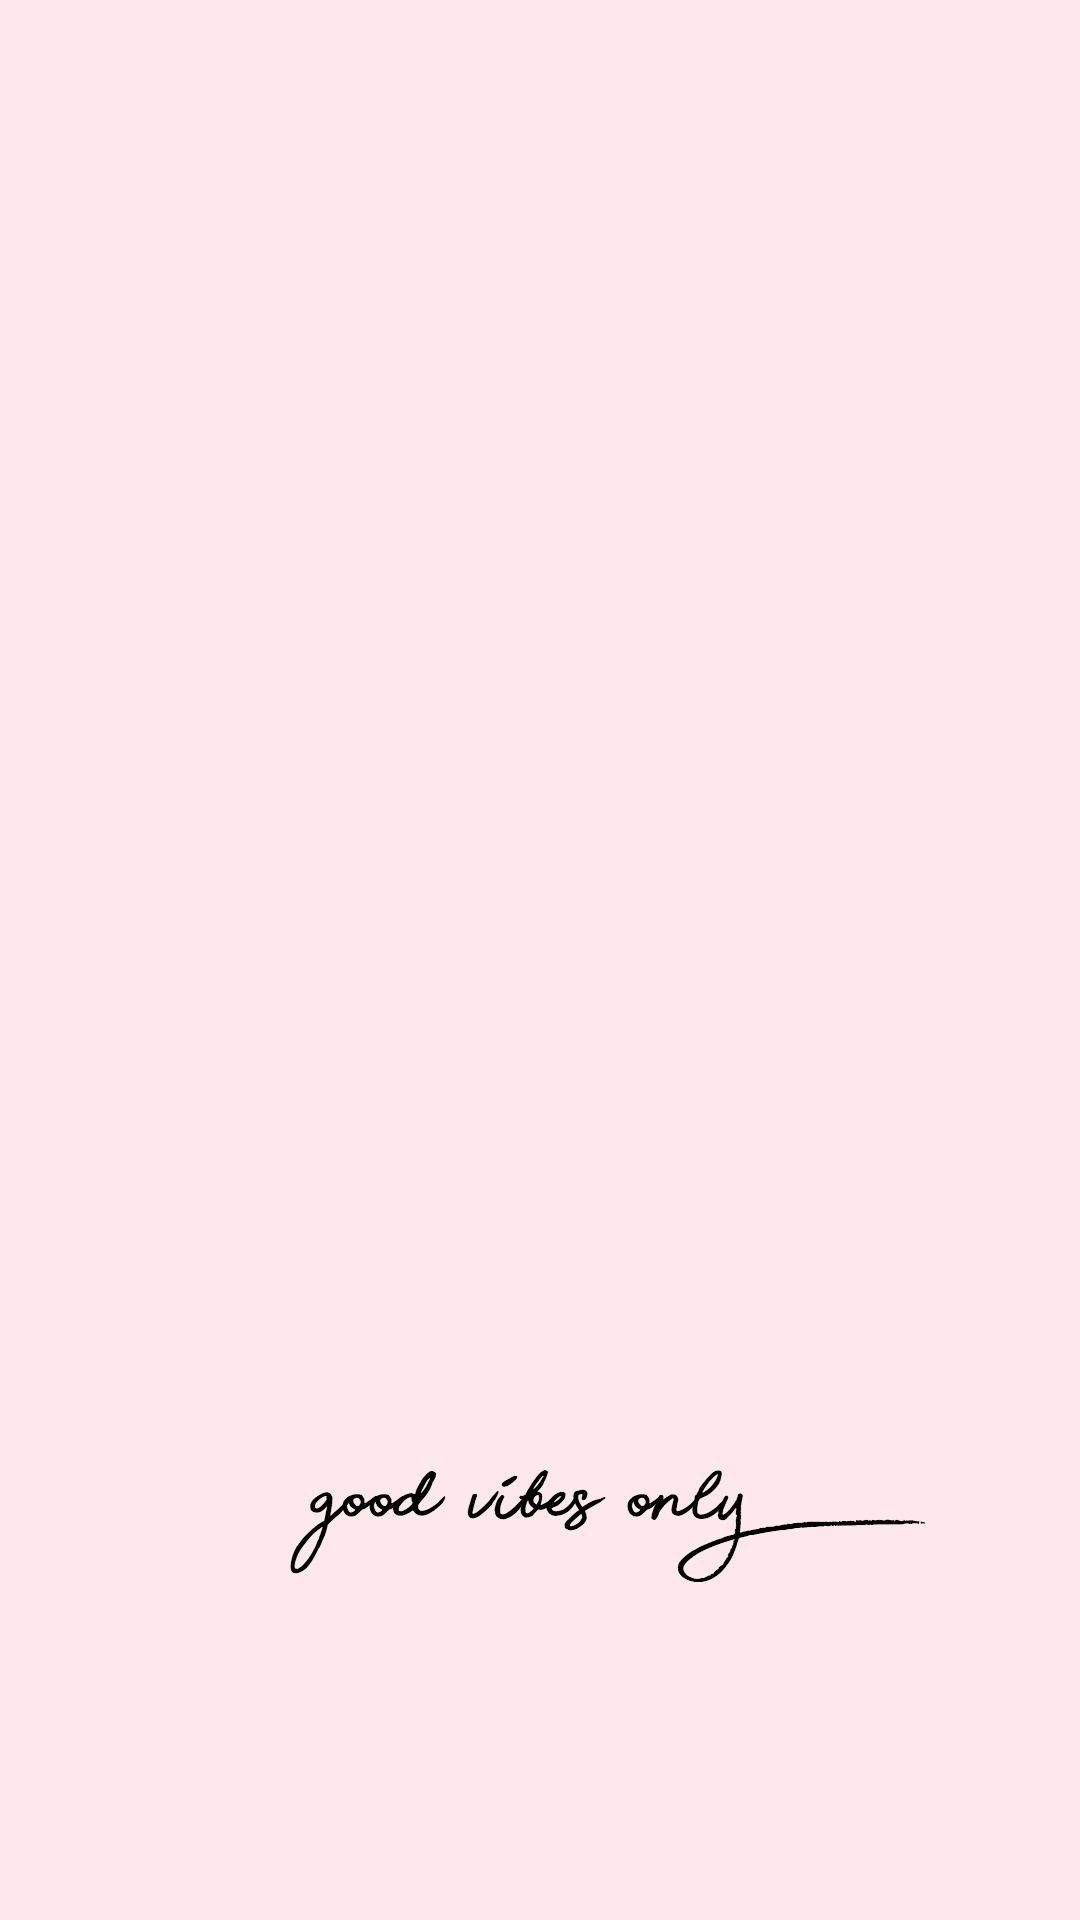 Pin By Bittie On Wallpapers Aesthetic Iphone Wallpaper Iphone Background Images Wallpaper Quotes